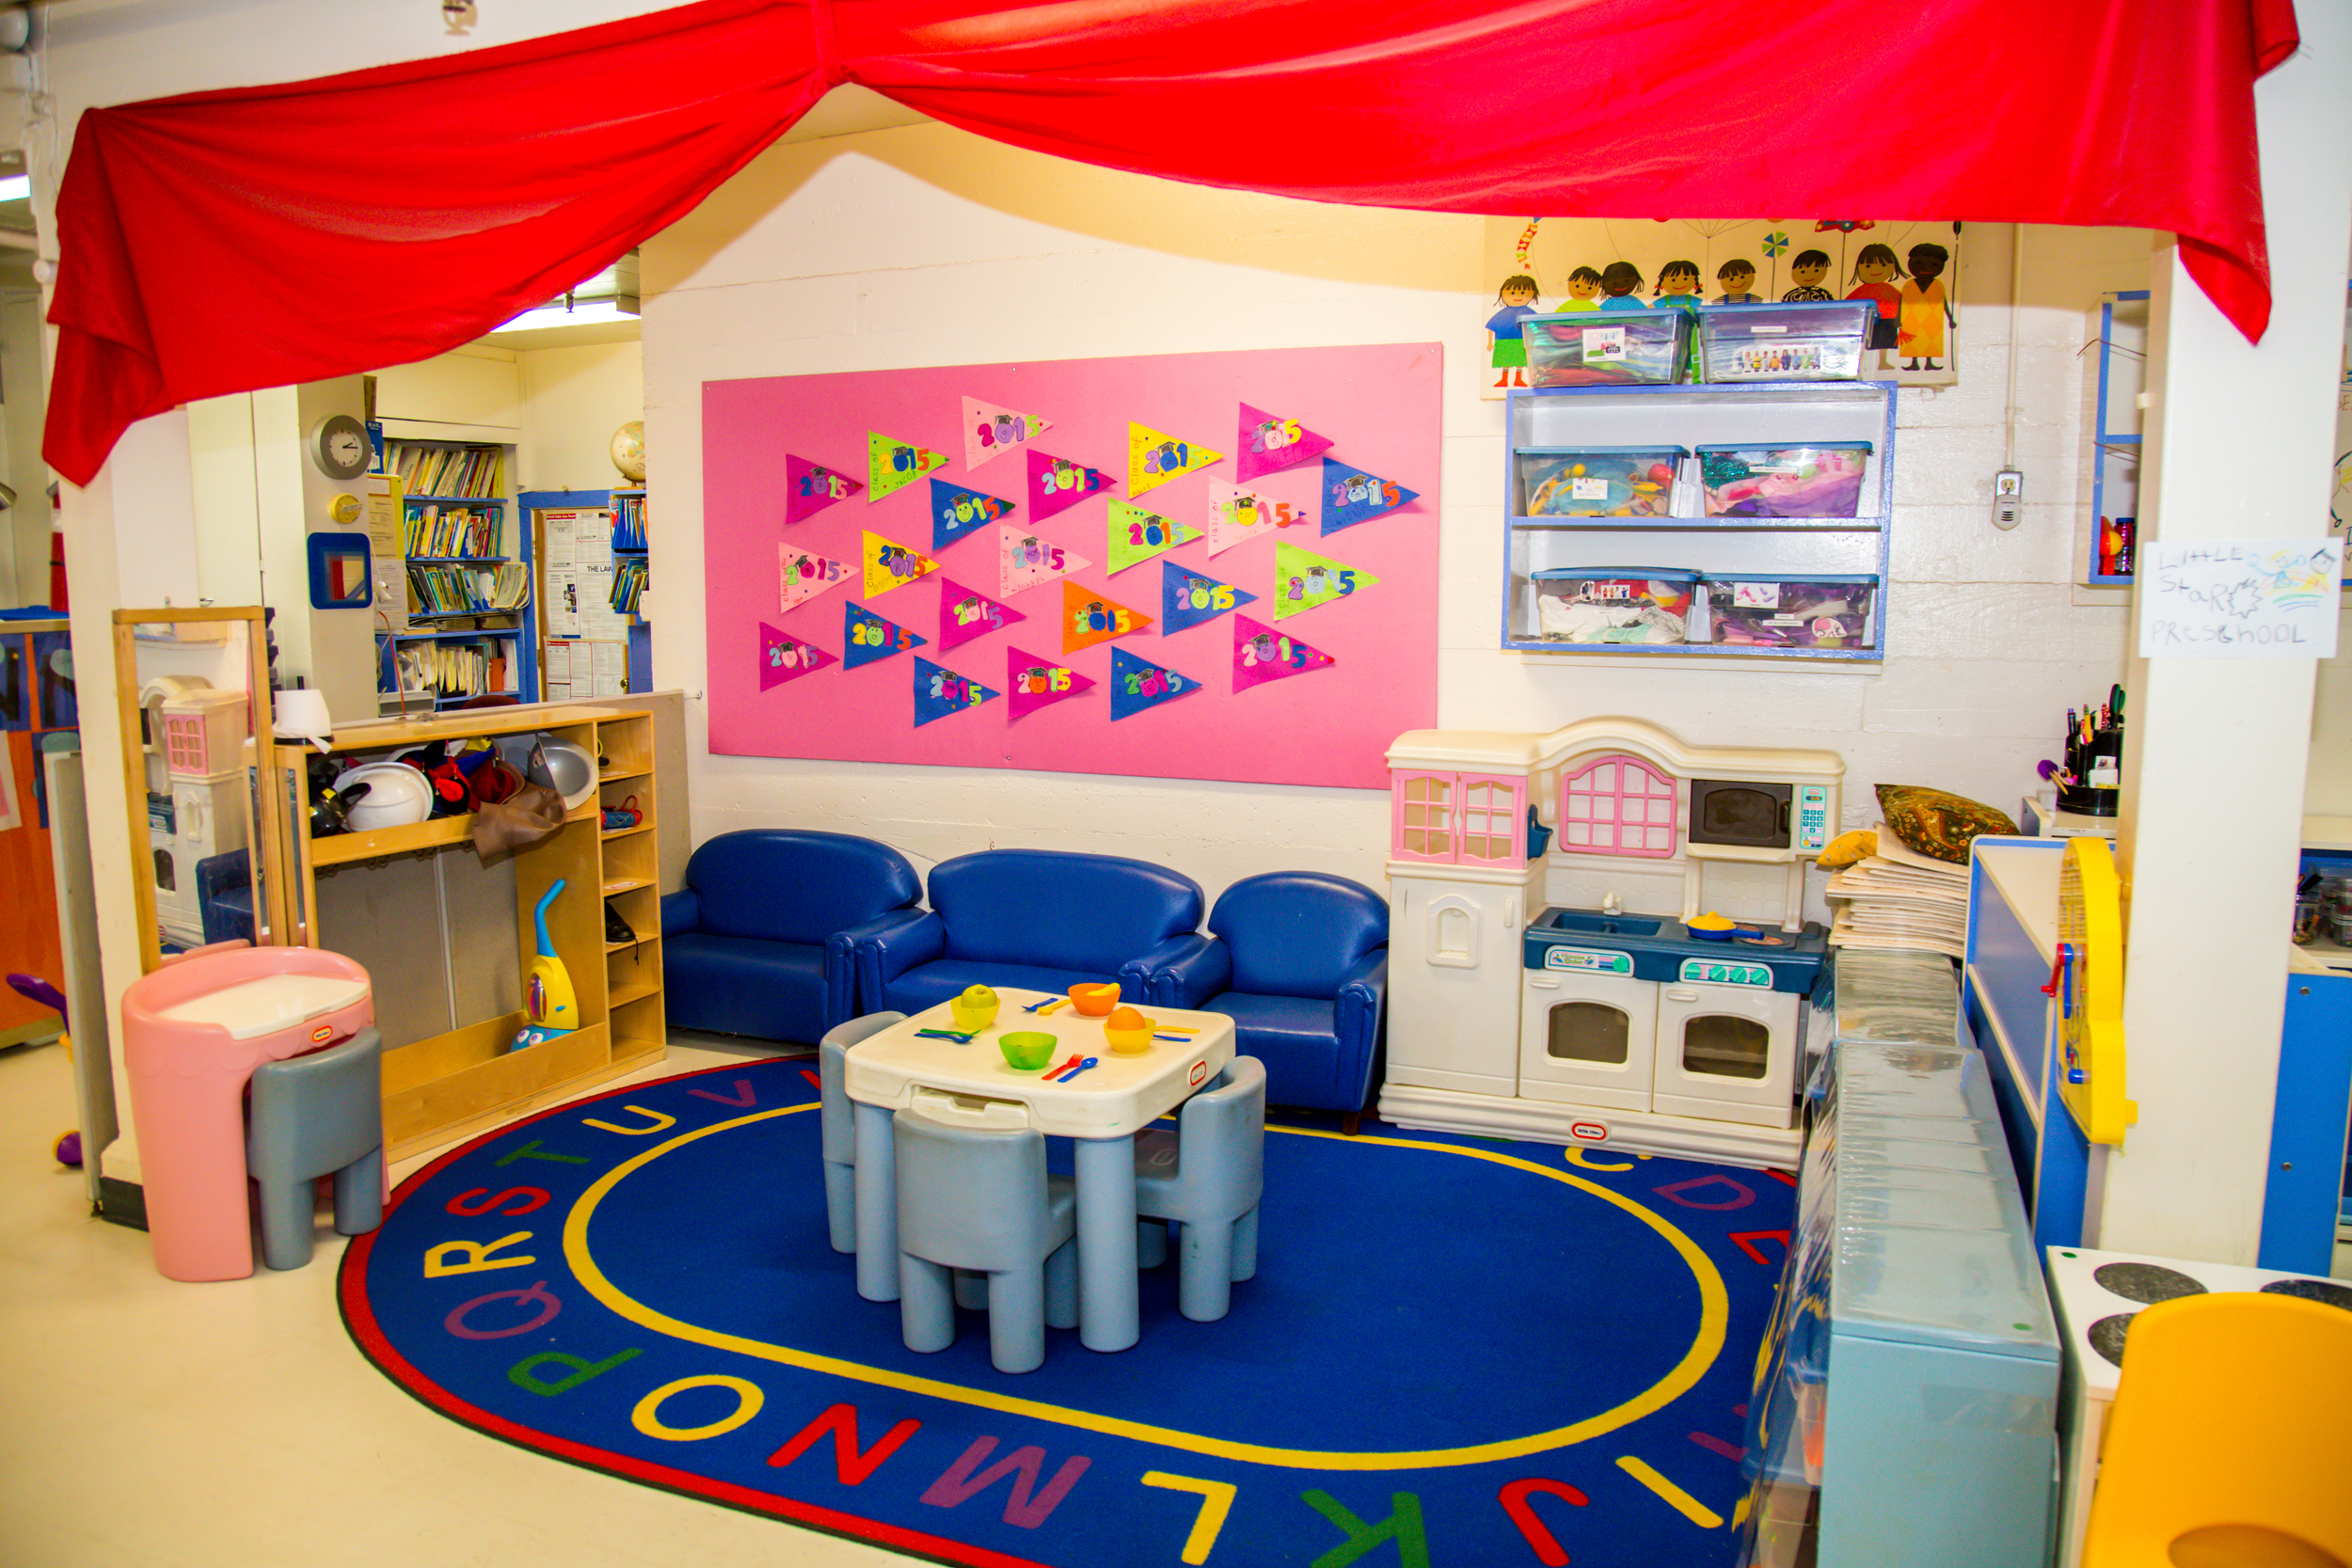 No school is complete without its playhouse. This sheltered area is set up for dramatic play every morning with different themes so thatevery childhas a chance to engage with their personal interests.